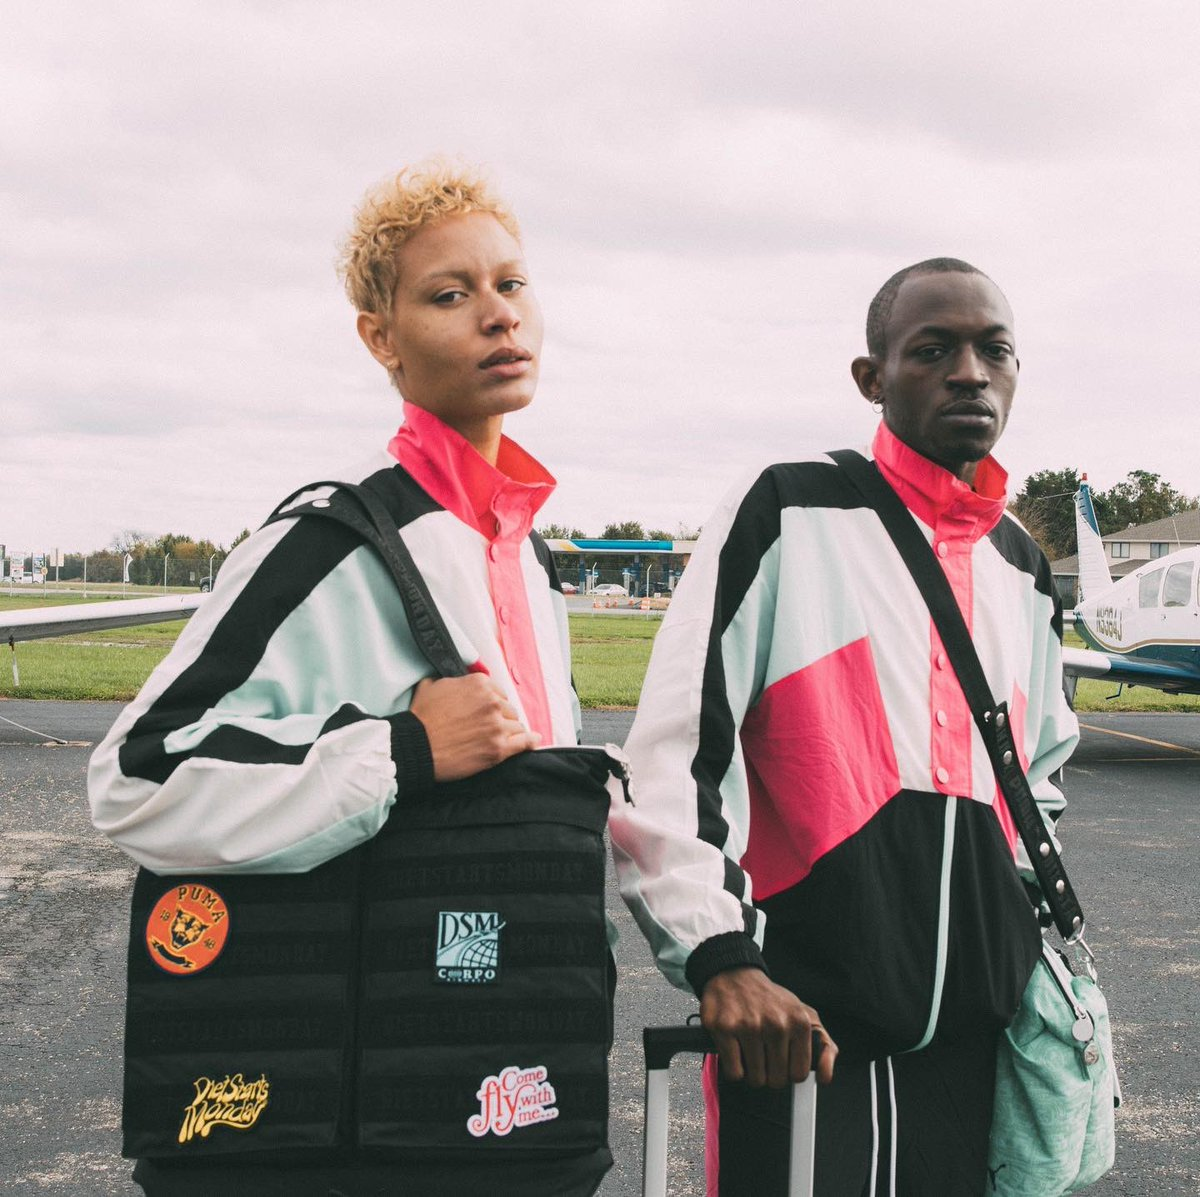 DSM for @PUMA Luggage collection now available only on the Greenhouse app.